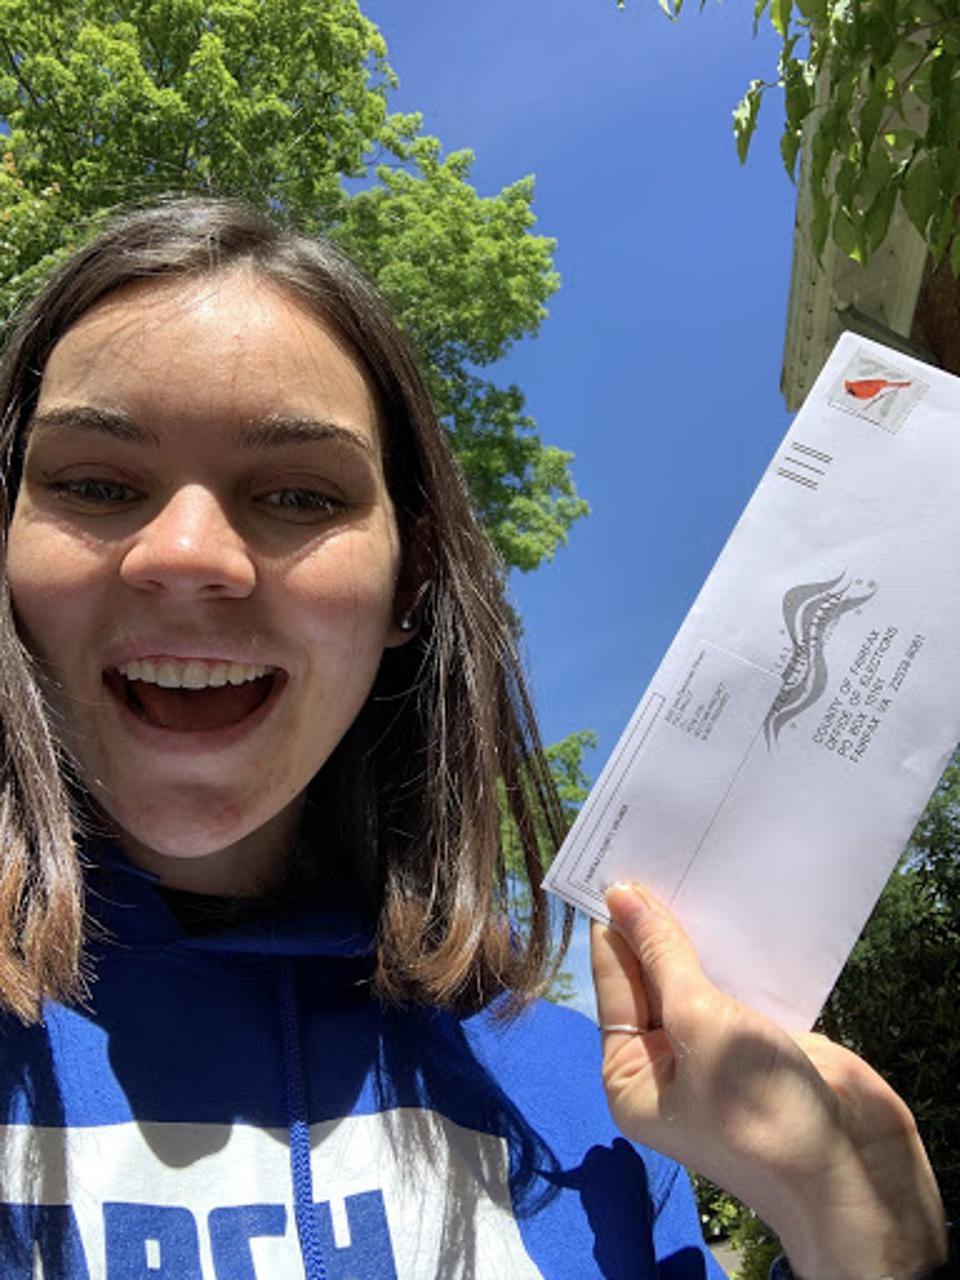 A female student in a blue tshirt votes by mail.